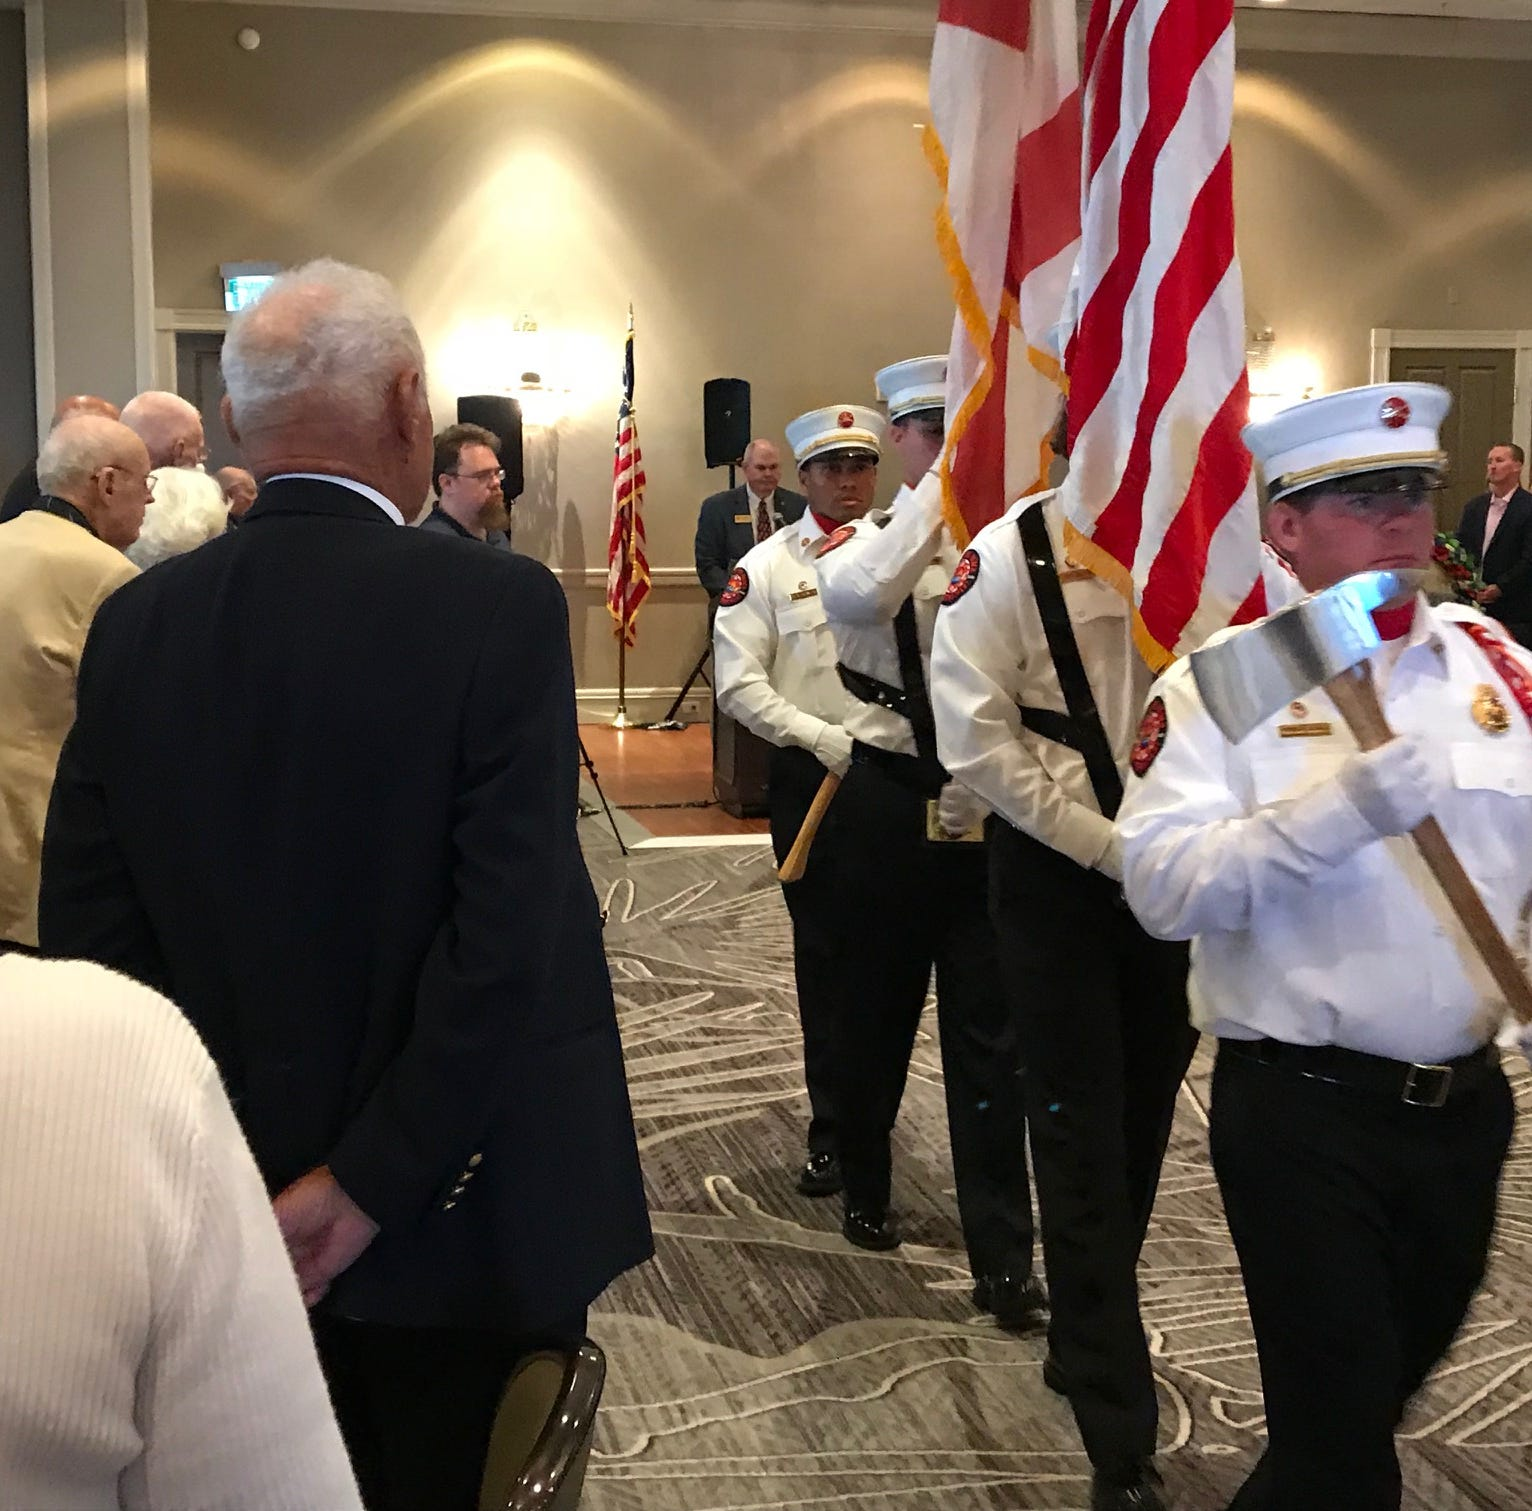 Eighth Spirit of '45 celebration draws more than 100 World War II veterans to Marriott resort